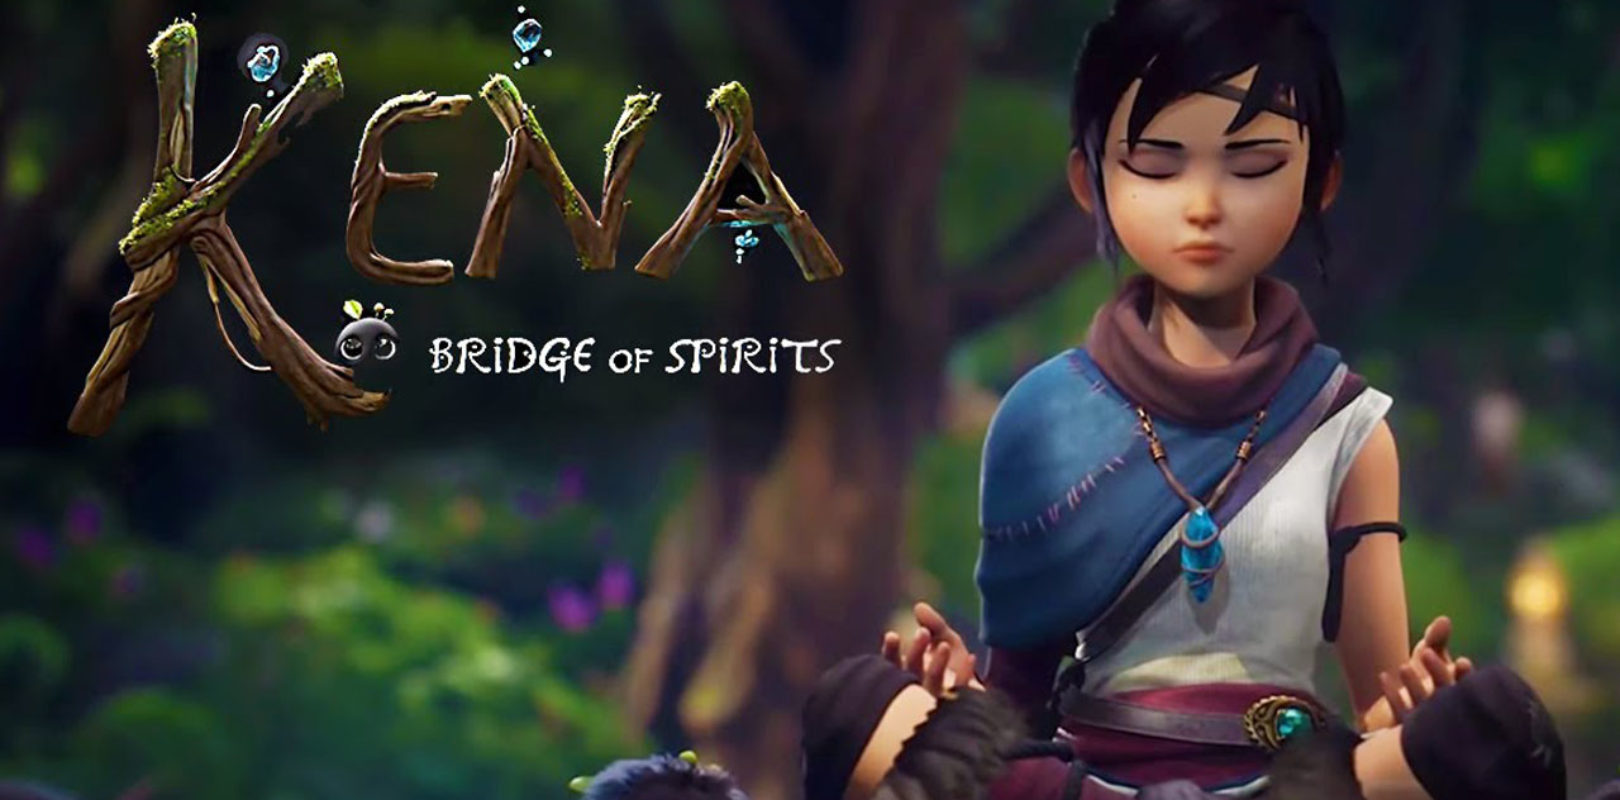 Ember-Lab-annonce-Kena-Bridge-of-Spirits-pour-PS5-00-1620x800-1